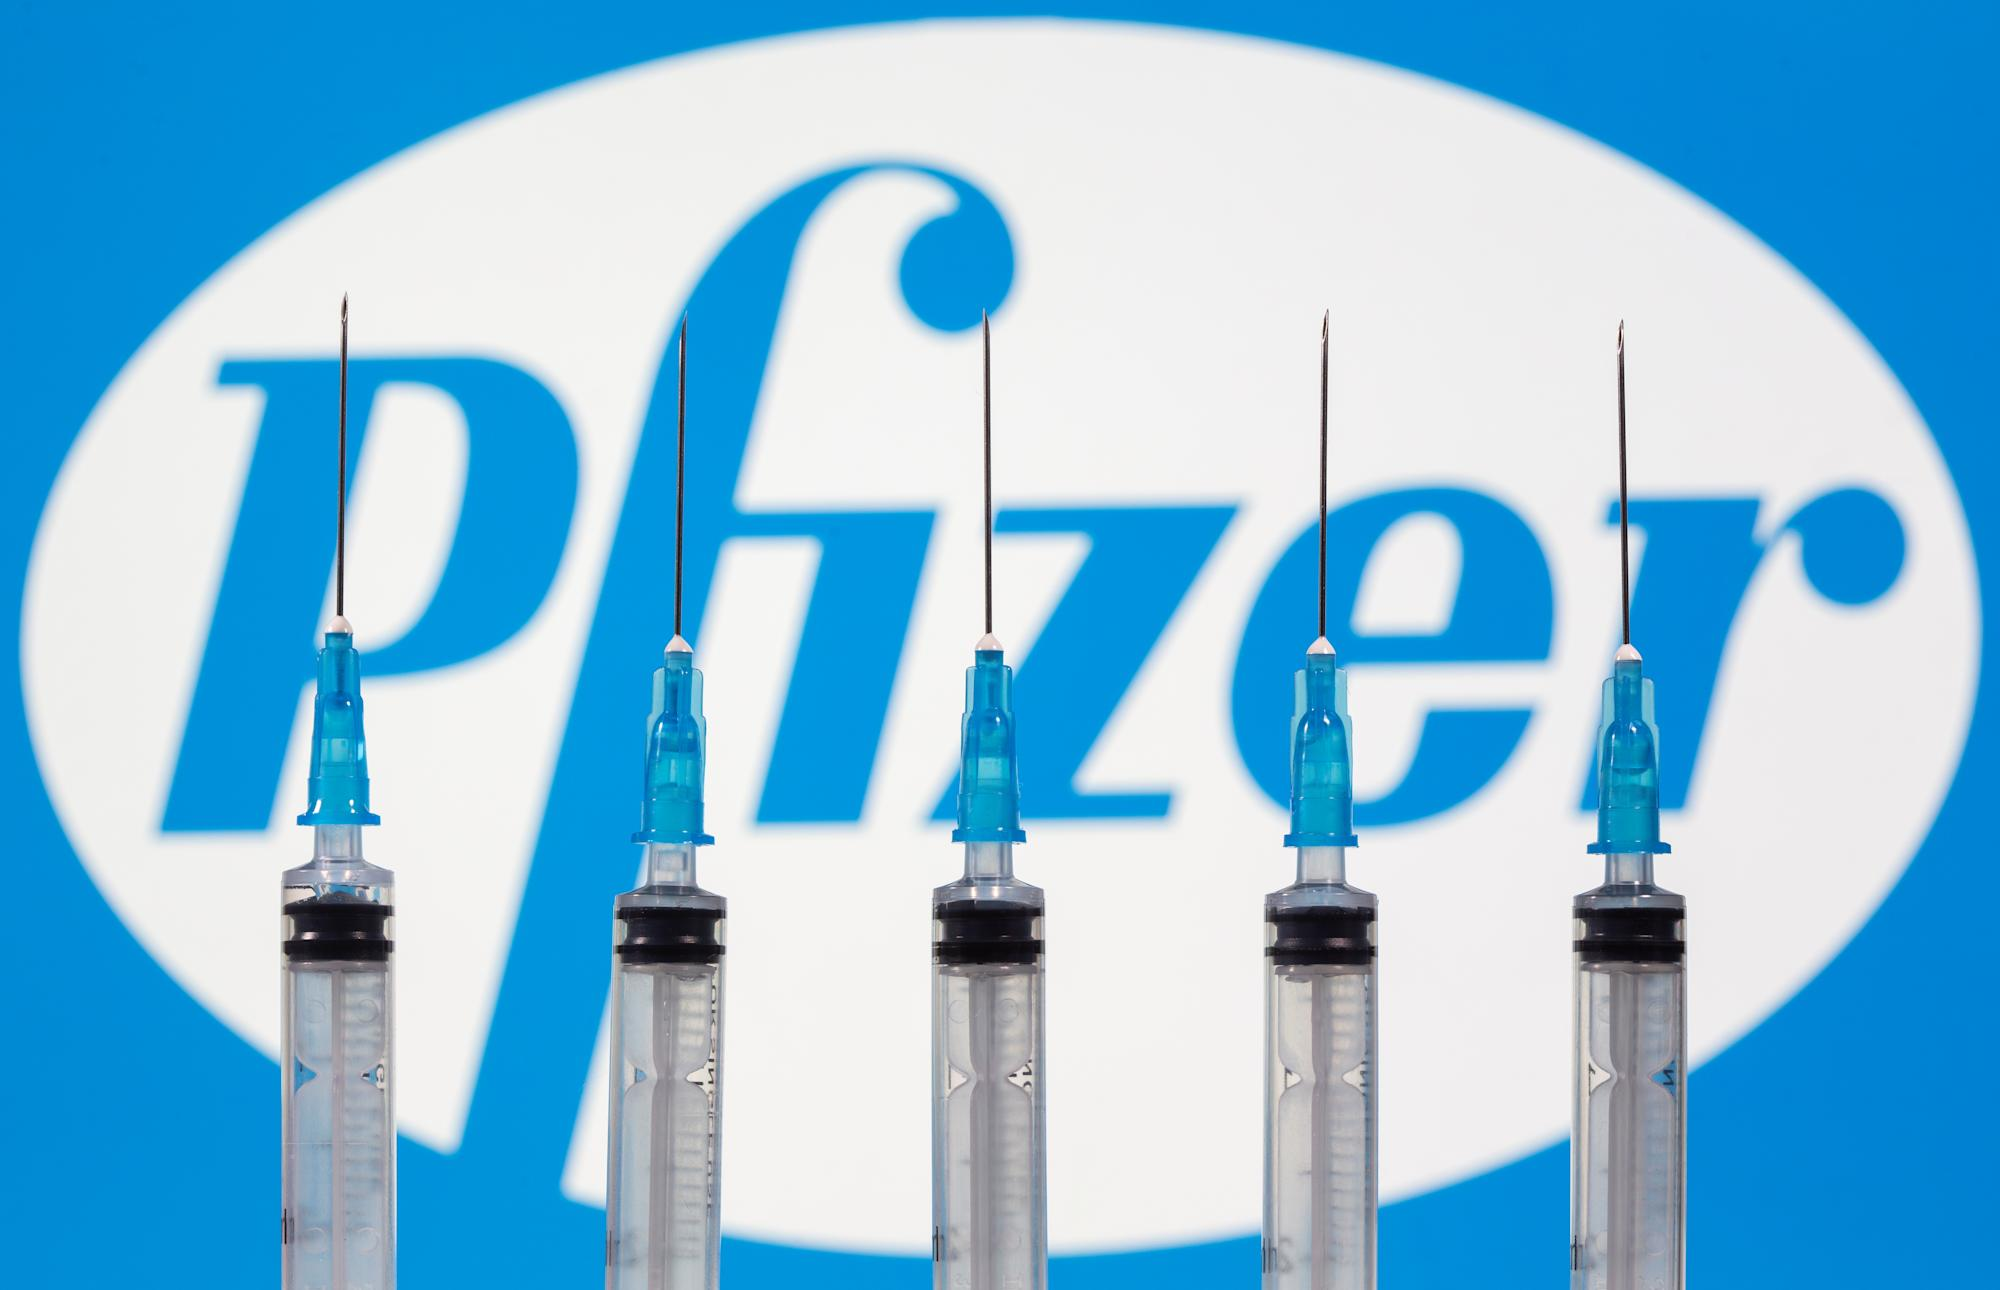 Pfizer's COVID-19 vaccine: Which countries get it first?